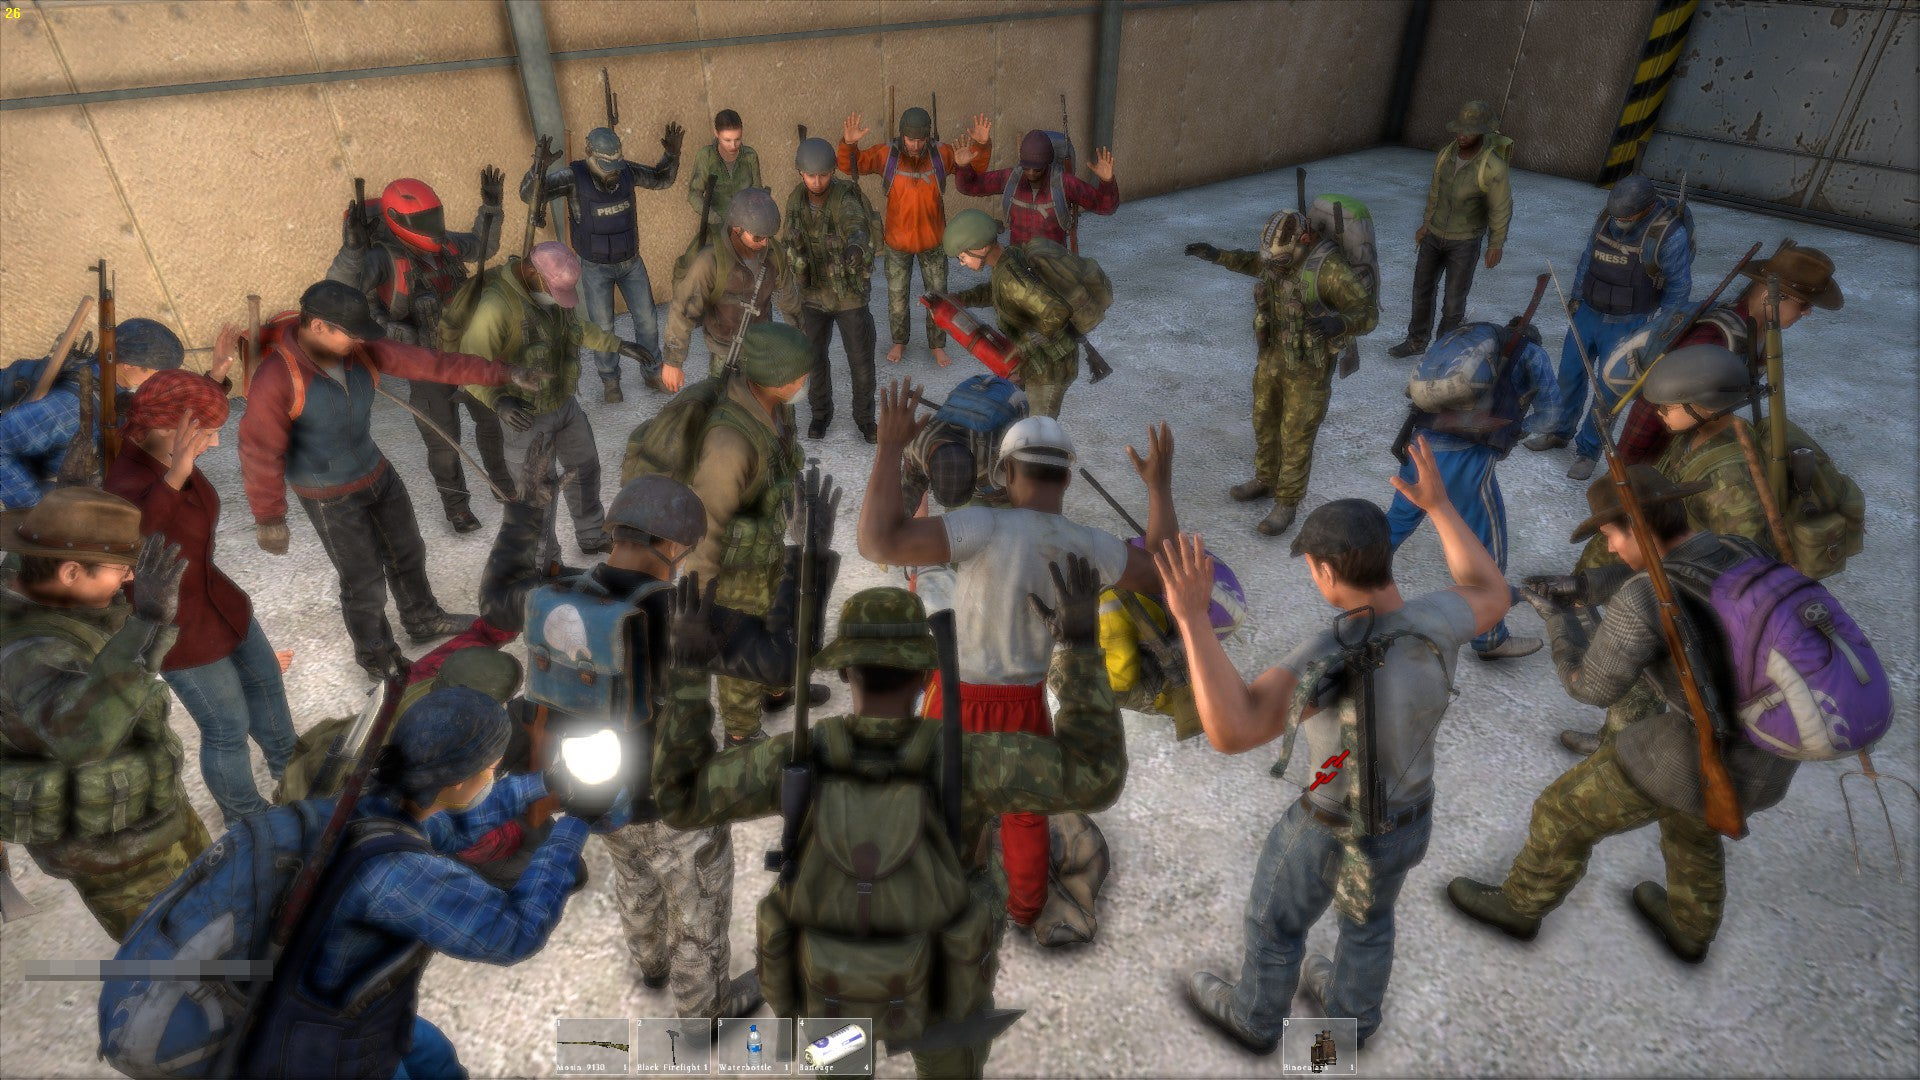 It's Not Often You See A Group So Large In DayZ